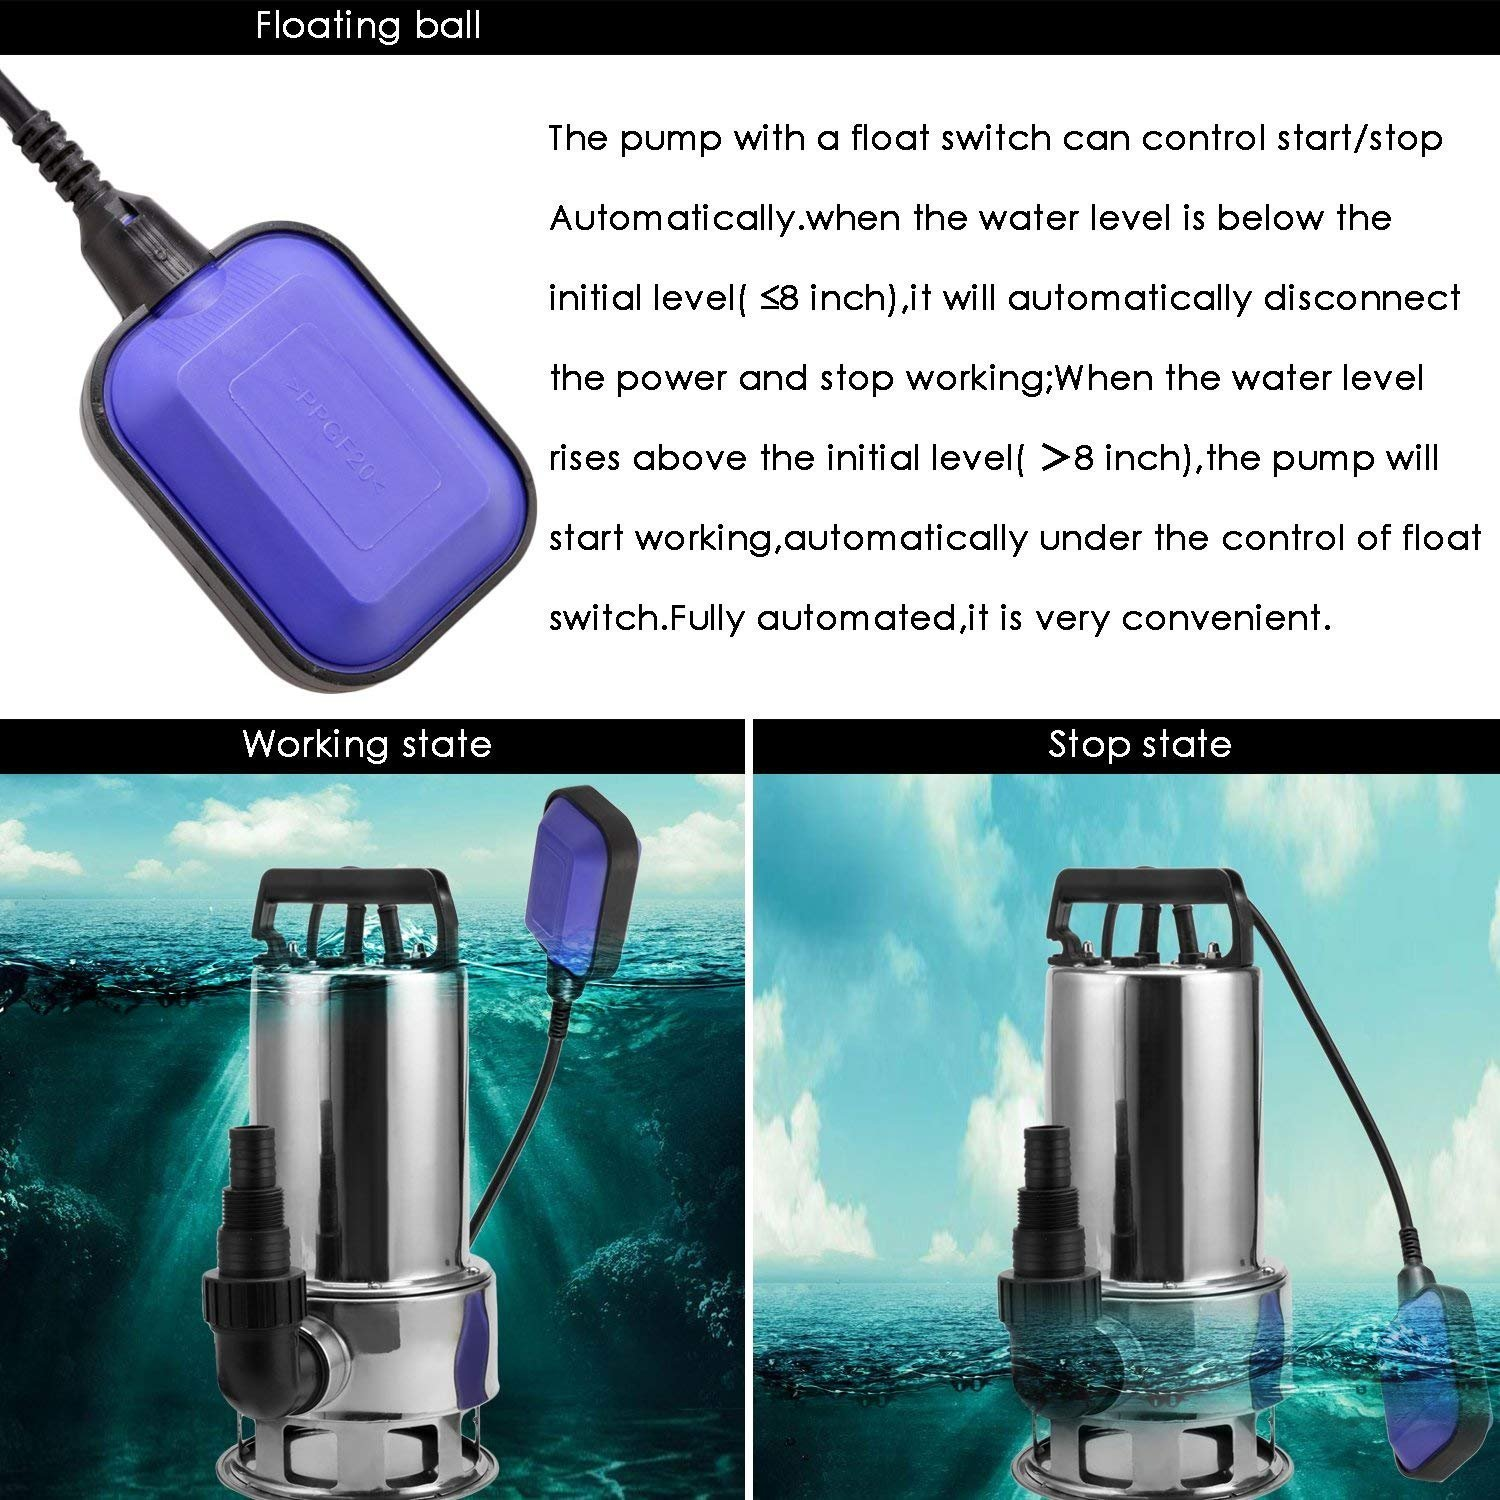 Homdox Submersible Water Pump 1.5 HP 1100W Garden Stainless Steel Sump Pump Pool Pump with Float Switch and 15ft Cable by Homdox (Image #6)